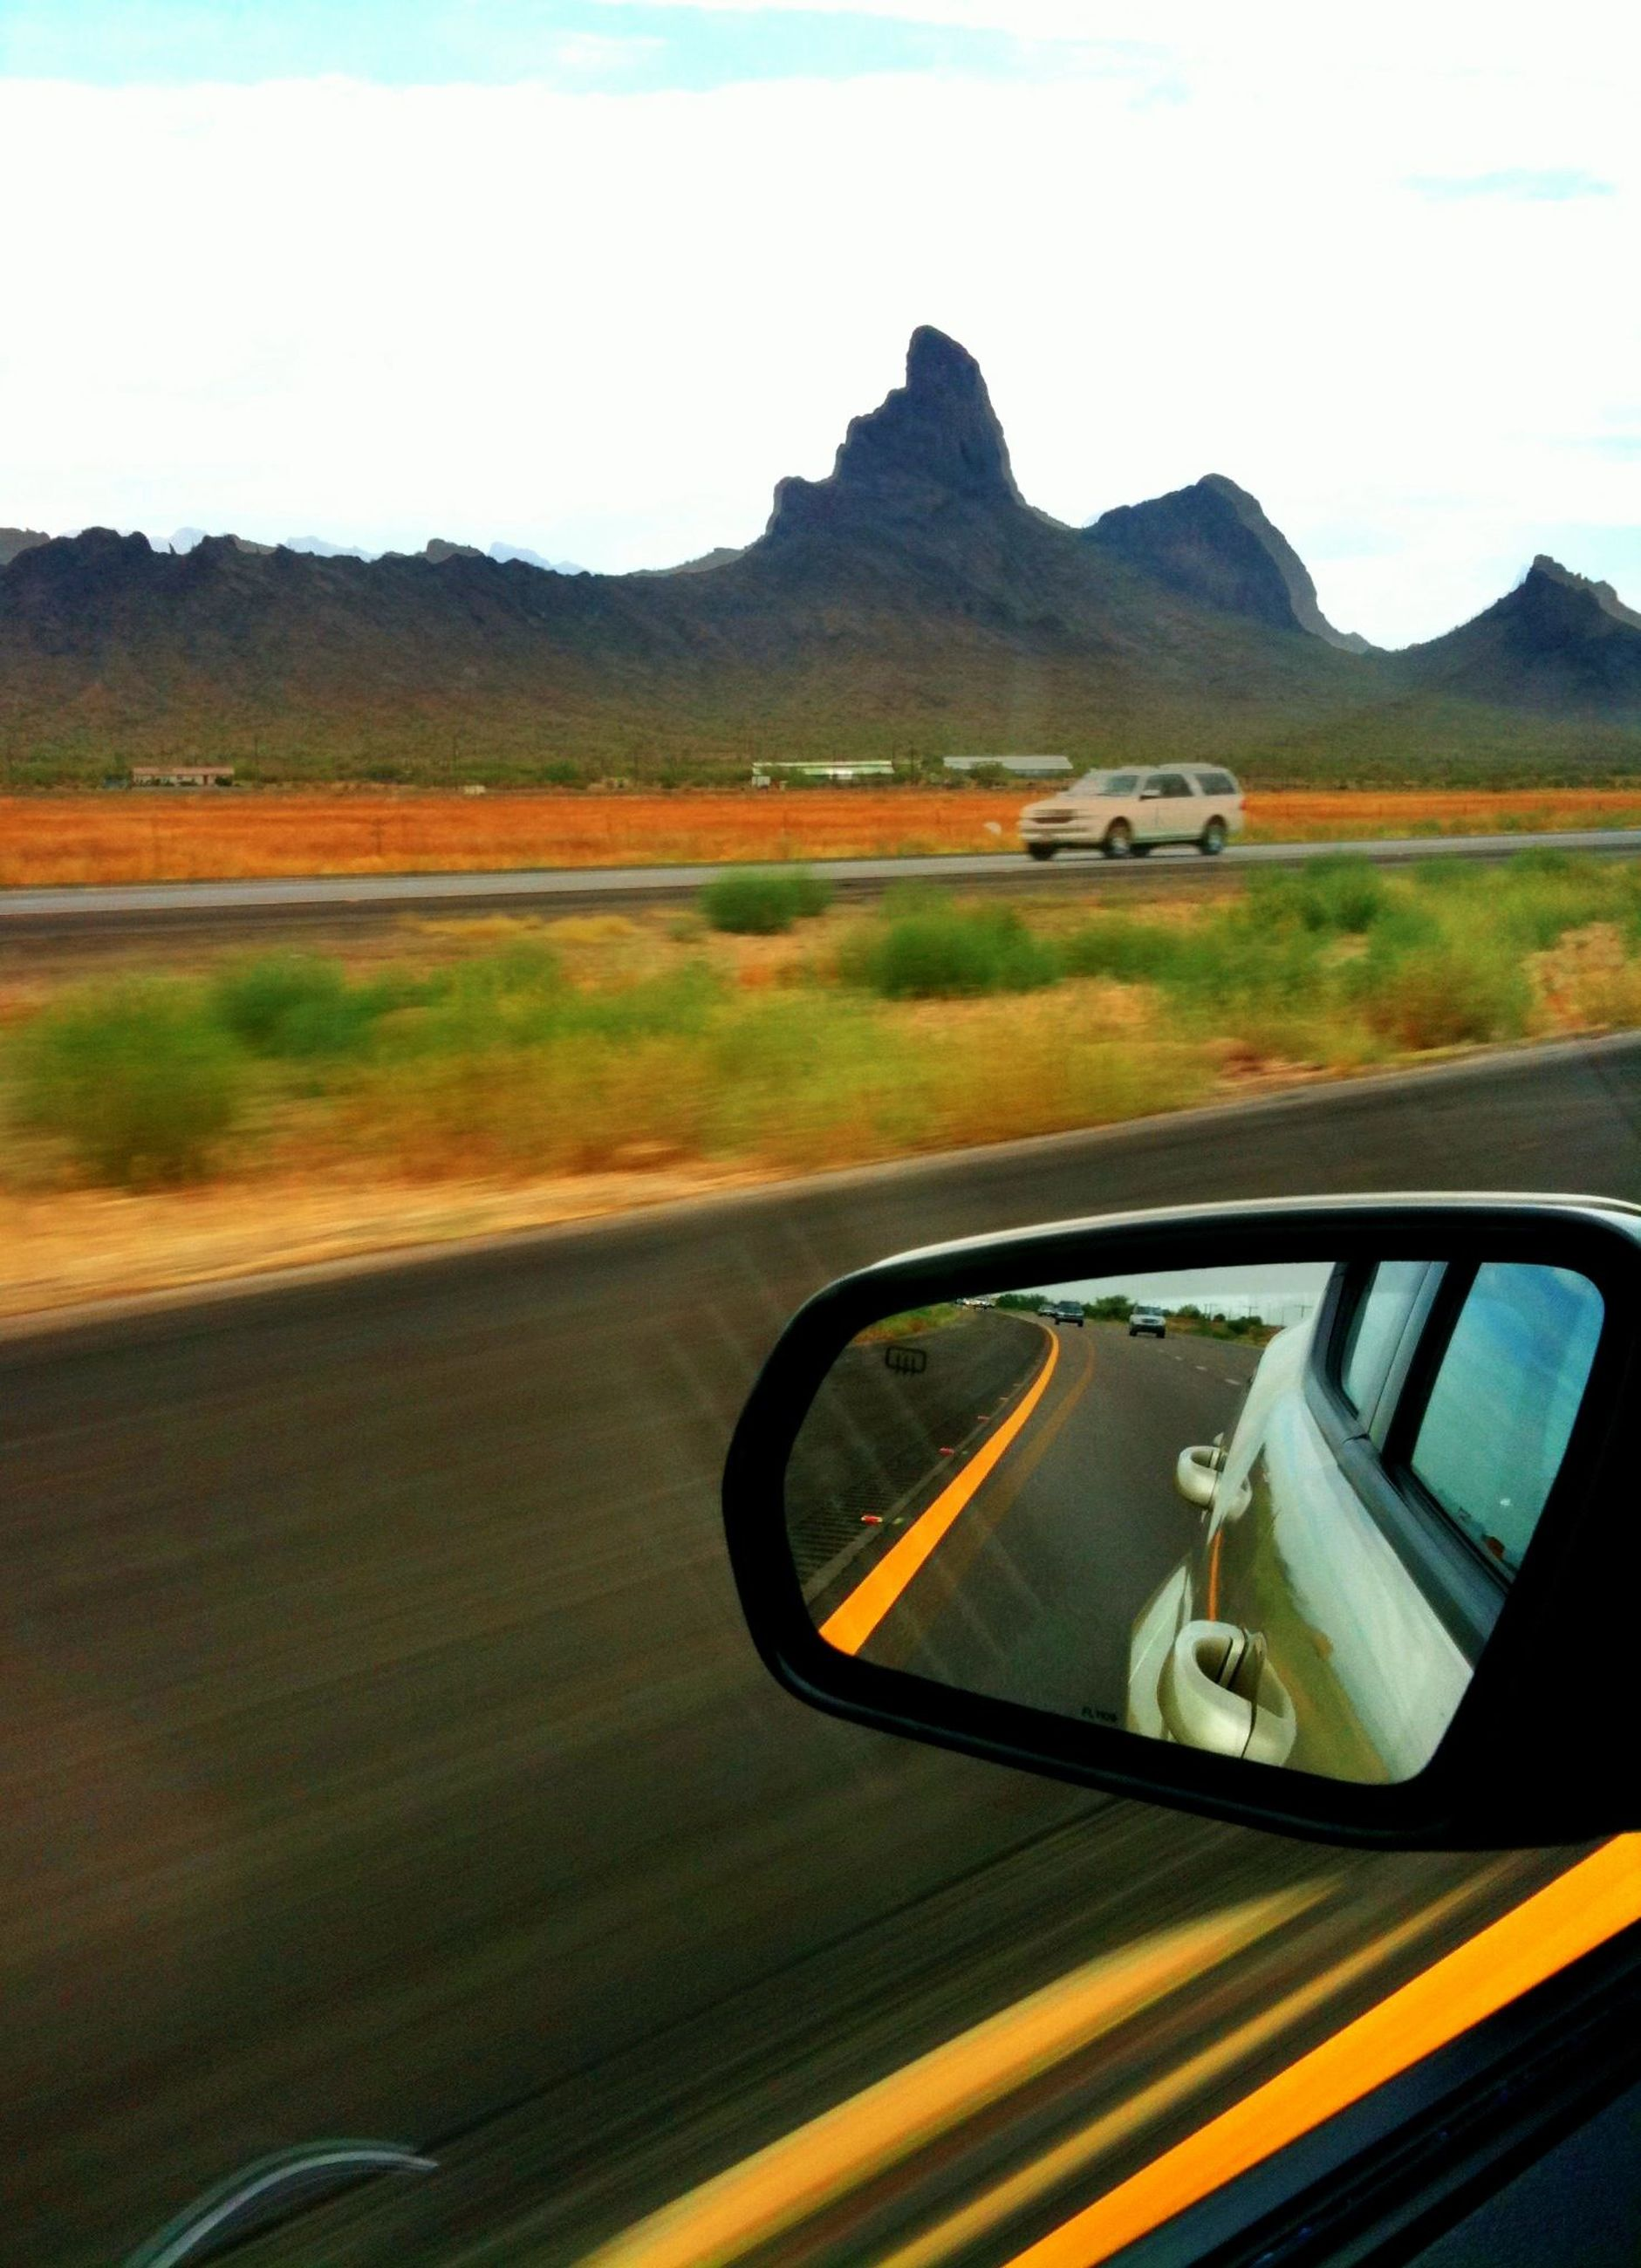 transportation, land vehicle, mode of transport, car, landscape, side-view mirror, road, mountain, vehicle interior, travel, sky, car interior, cropped, part of, reflection, on the move, field, sunset, road trip, scenics